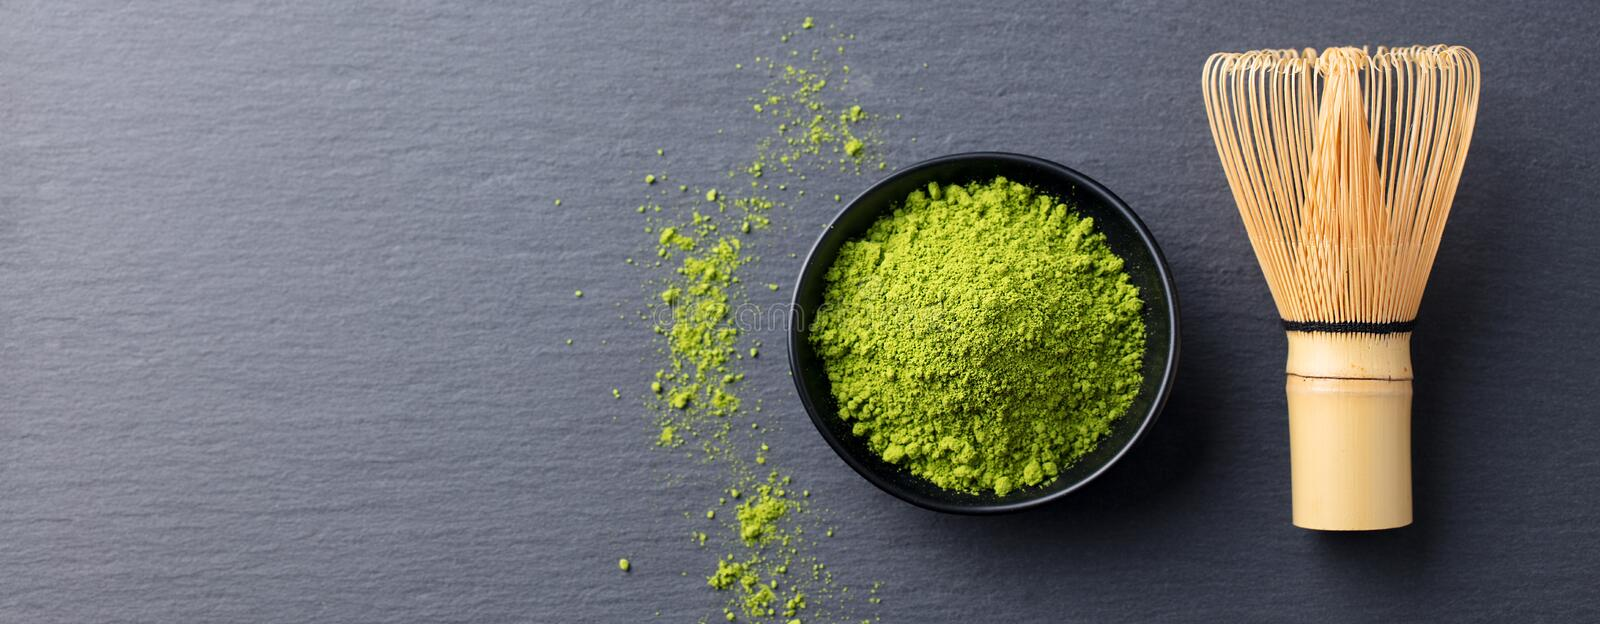 Matcha green tea cooking process in a bowl with bamboo whisk. Black slate background. Copy space. Top view. royalty free stock images